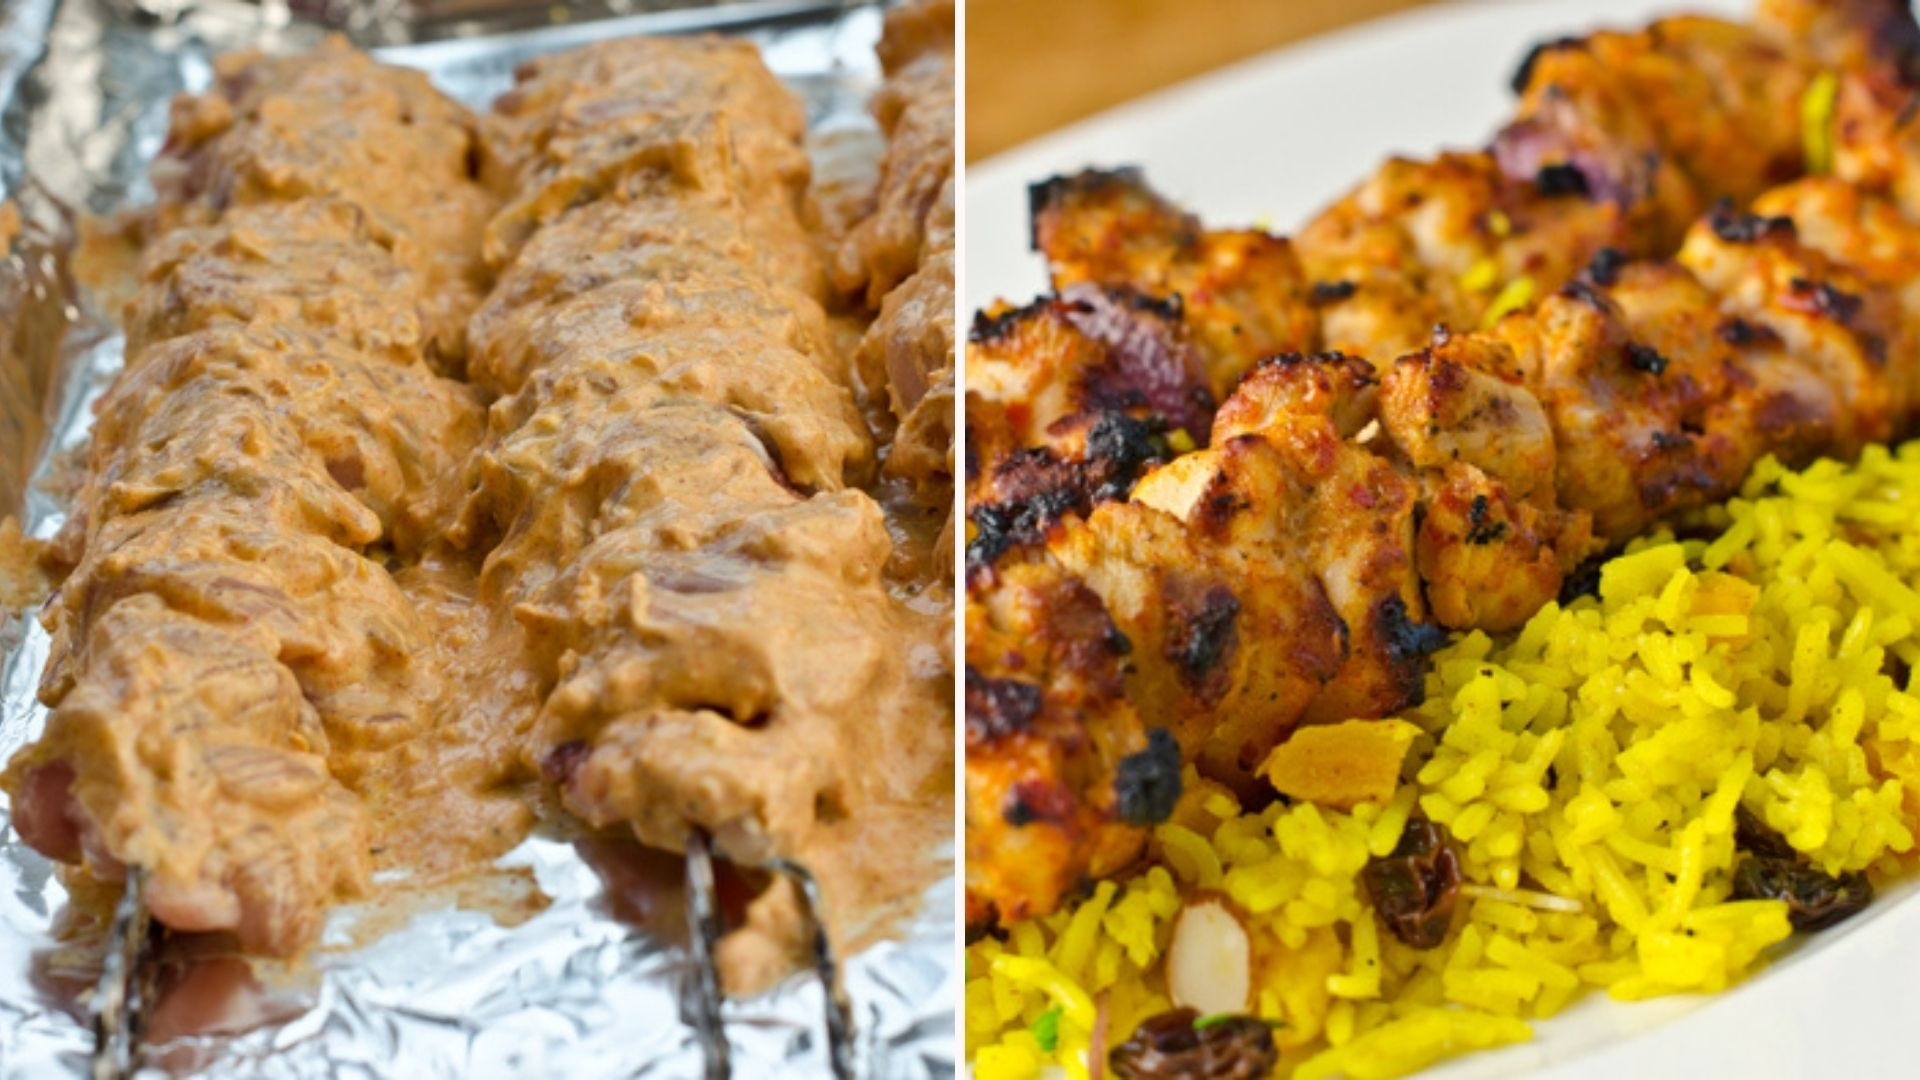 Two images: The left image is of a few raw chicken kebabs marinated with greek yogurt marinade, and the right image is of the same chicken kebabs after being oven roasted, sitting on a bed of raisin rice pilaf.